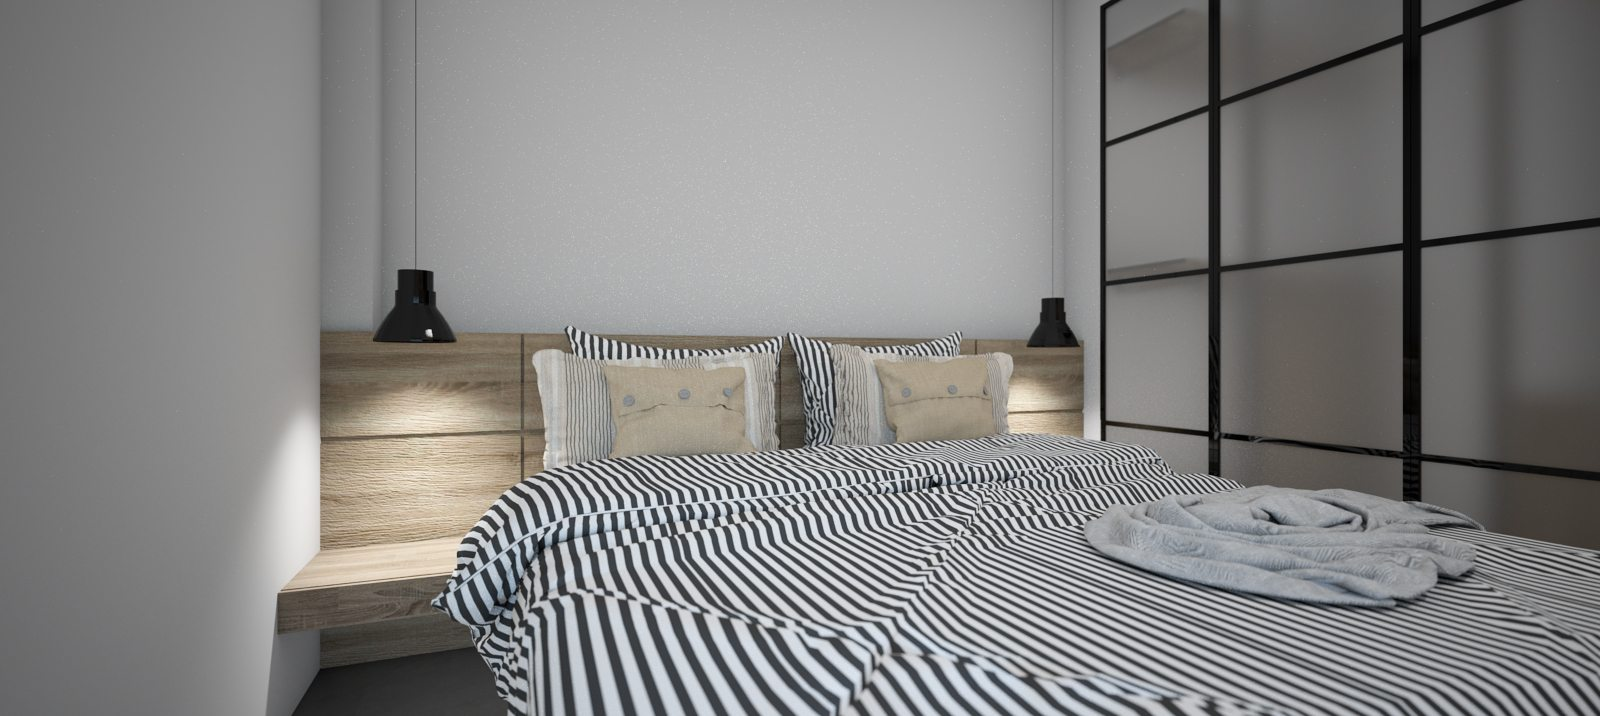 archicostudio_house-ts05_bed2